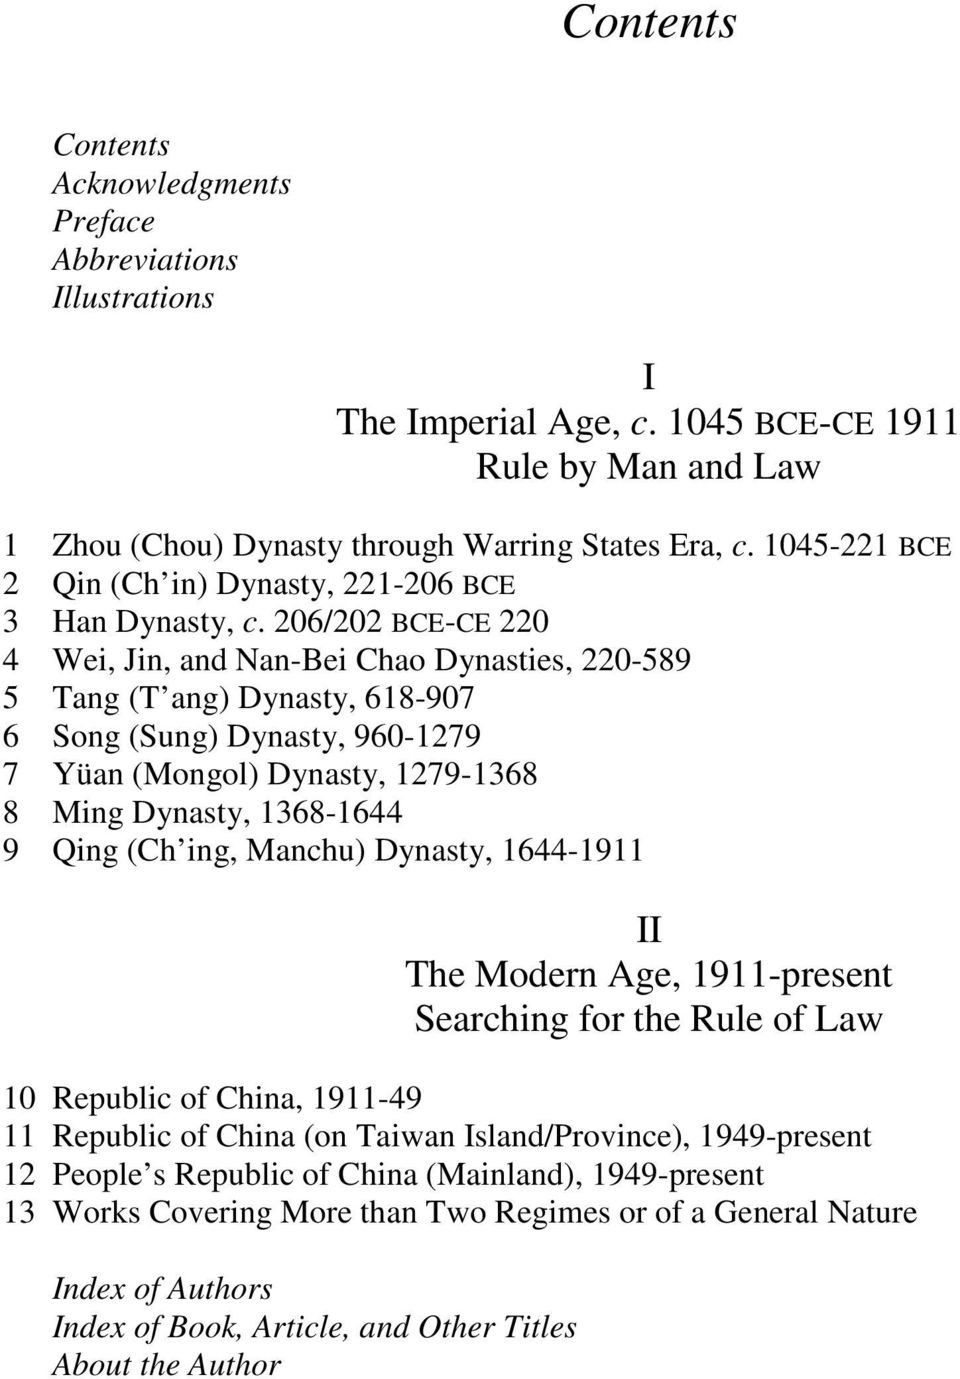 206/202 BCE-CE 220 4 Wei, Jin, and Nan-Bei Chao Dynasties, 220-589 5 Tang (T ang) Dynasty, 618-907 6 Song (Sung) Dynasty, 960-1279 7 Yüan (Mongol) Dynasty, 1279-1368 8 Ming Dynasty, 1368-1644 9 Qing